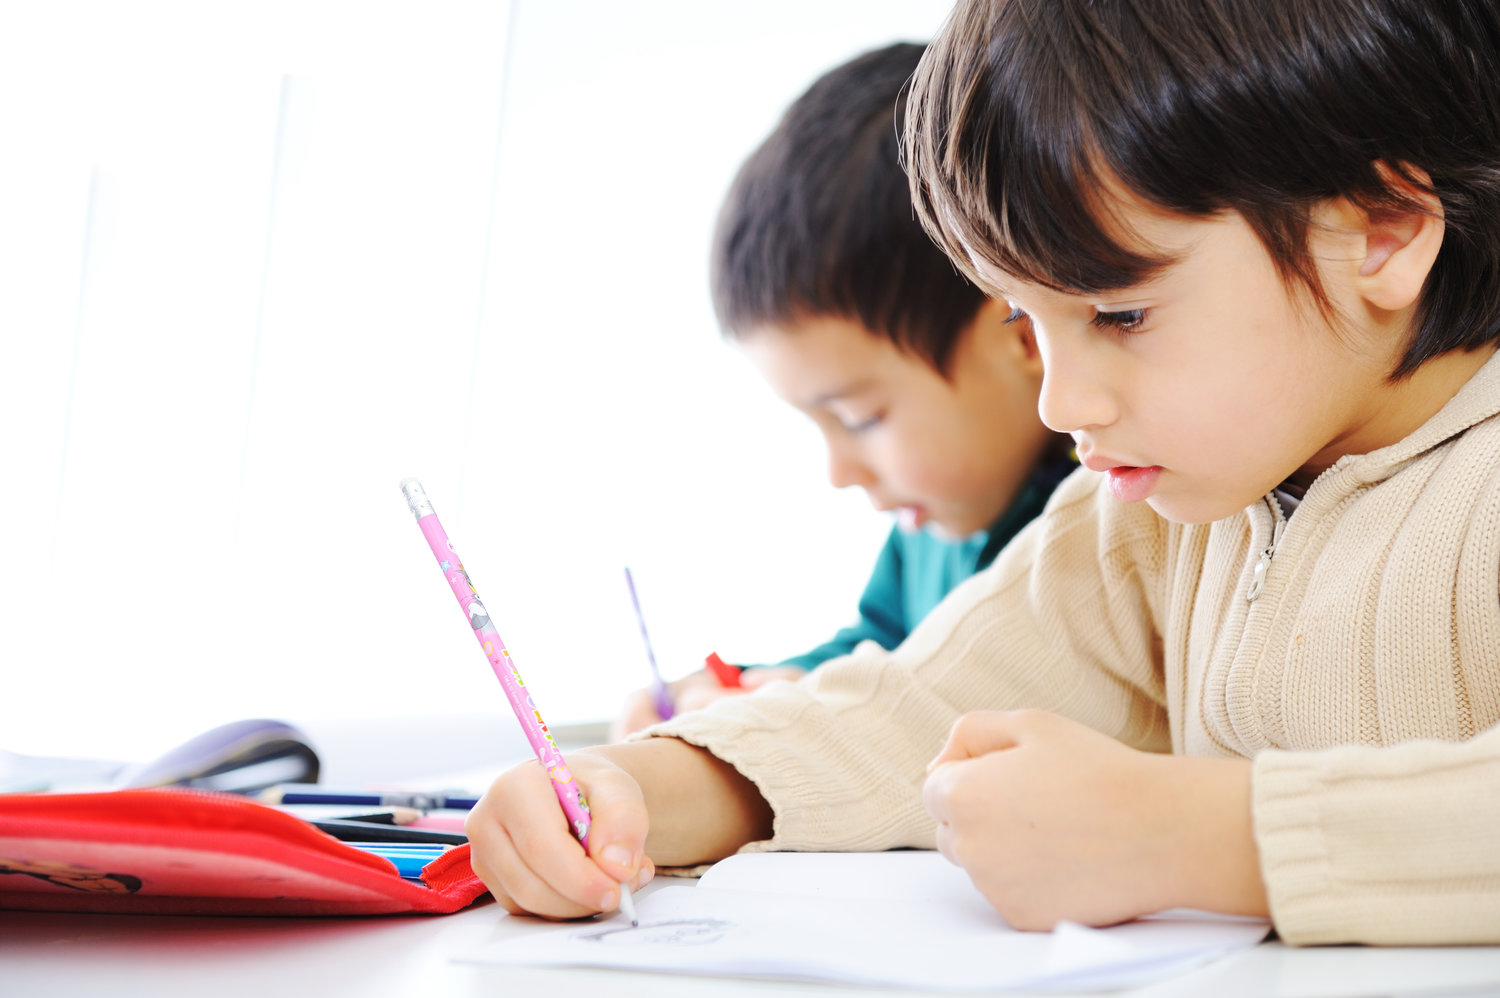 Watch our video on our NEW Learning Series:Pre-Handwriting